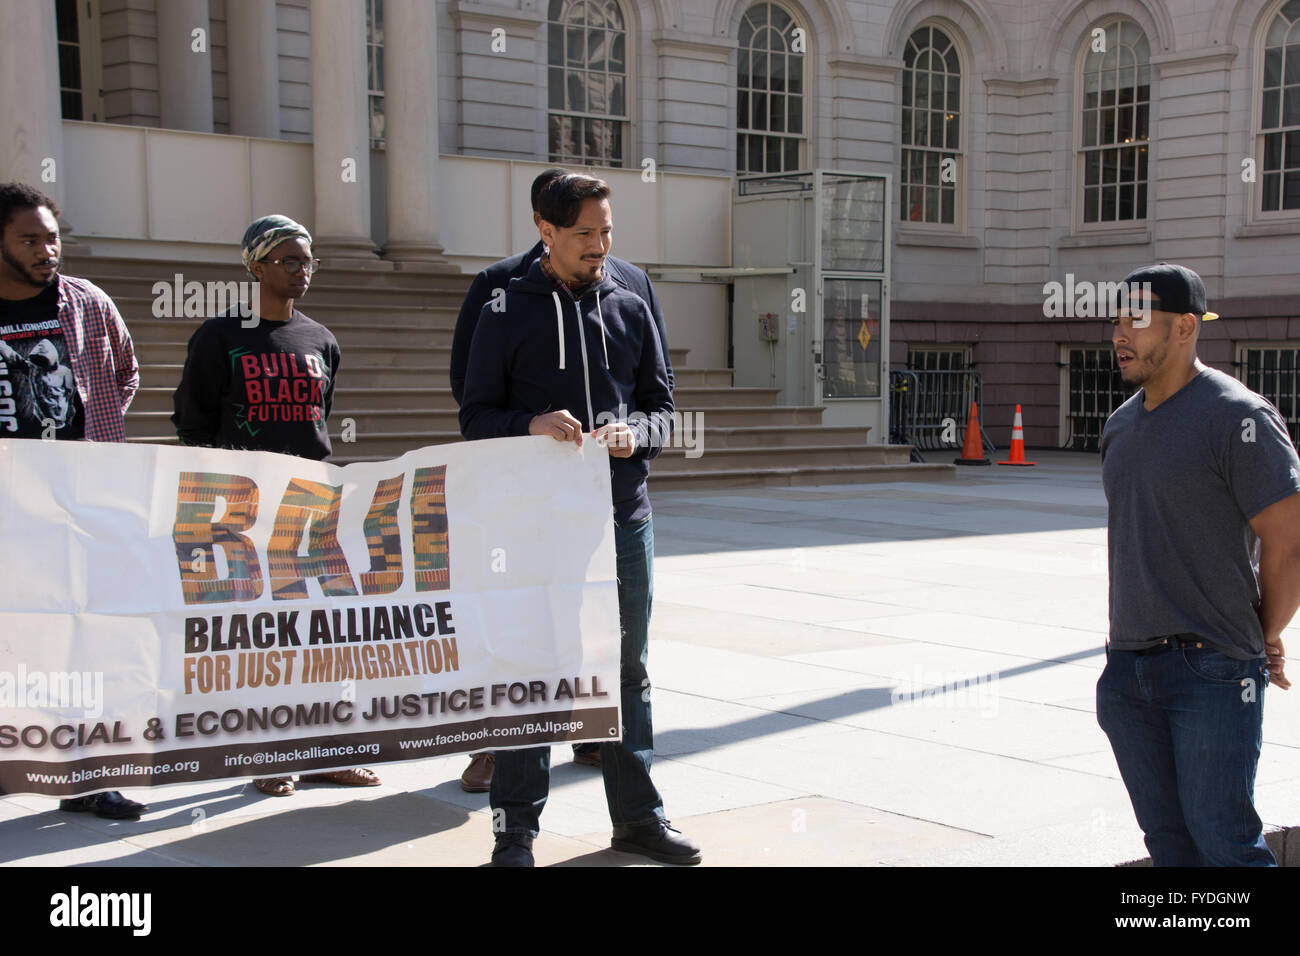 New York, USA. 25th April 2016. Josmar Trujillo of the Coalition to End Broken Windows spoke against police practices - Stock Image